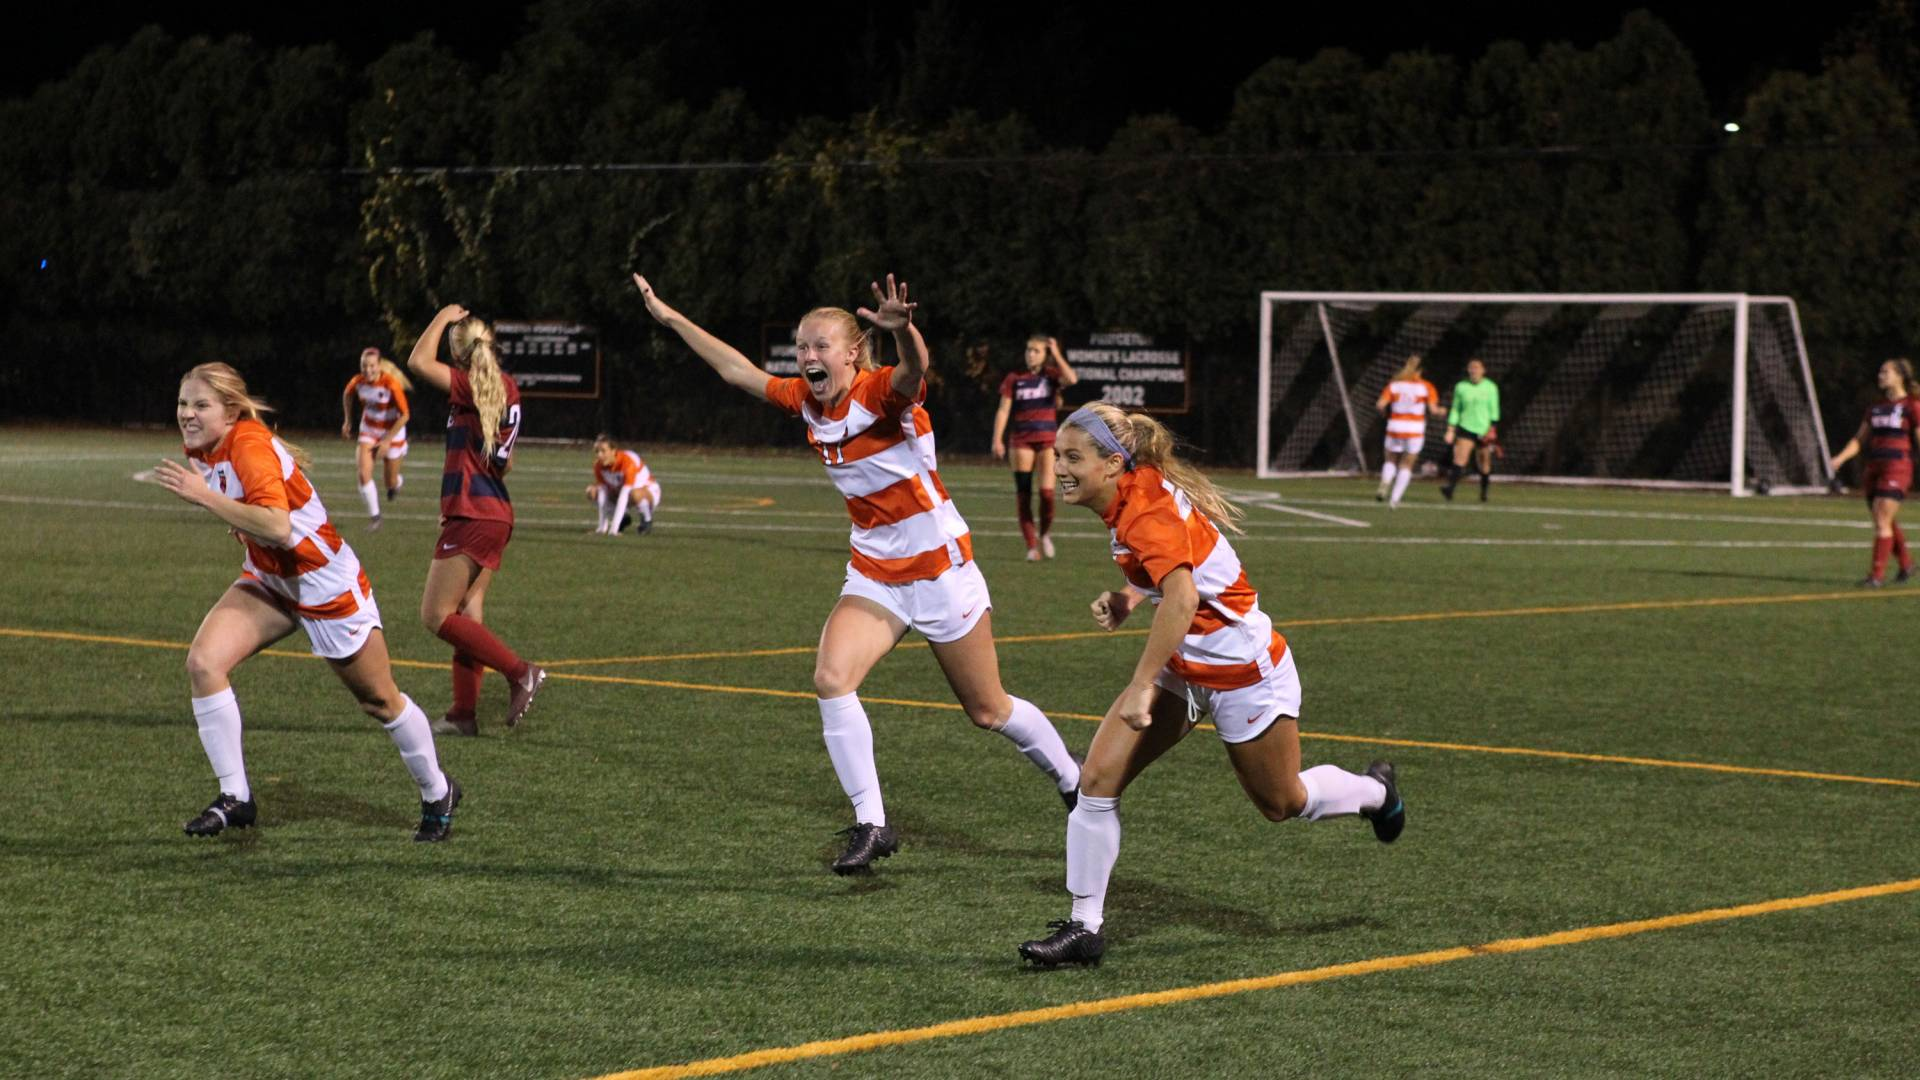 Women's soccer team celebrating on soccer field